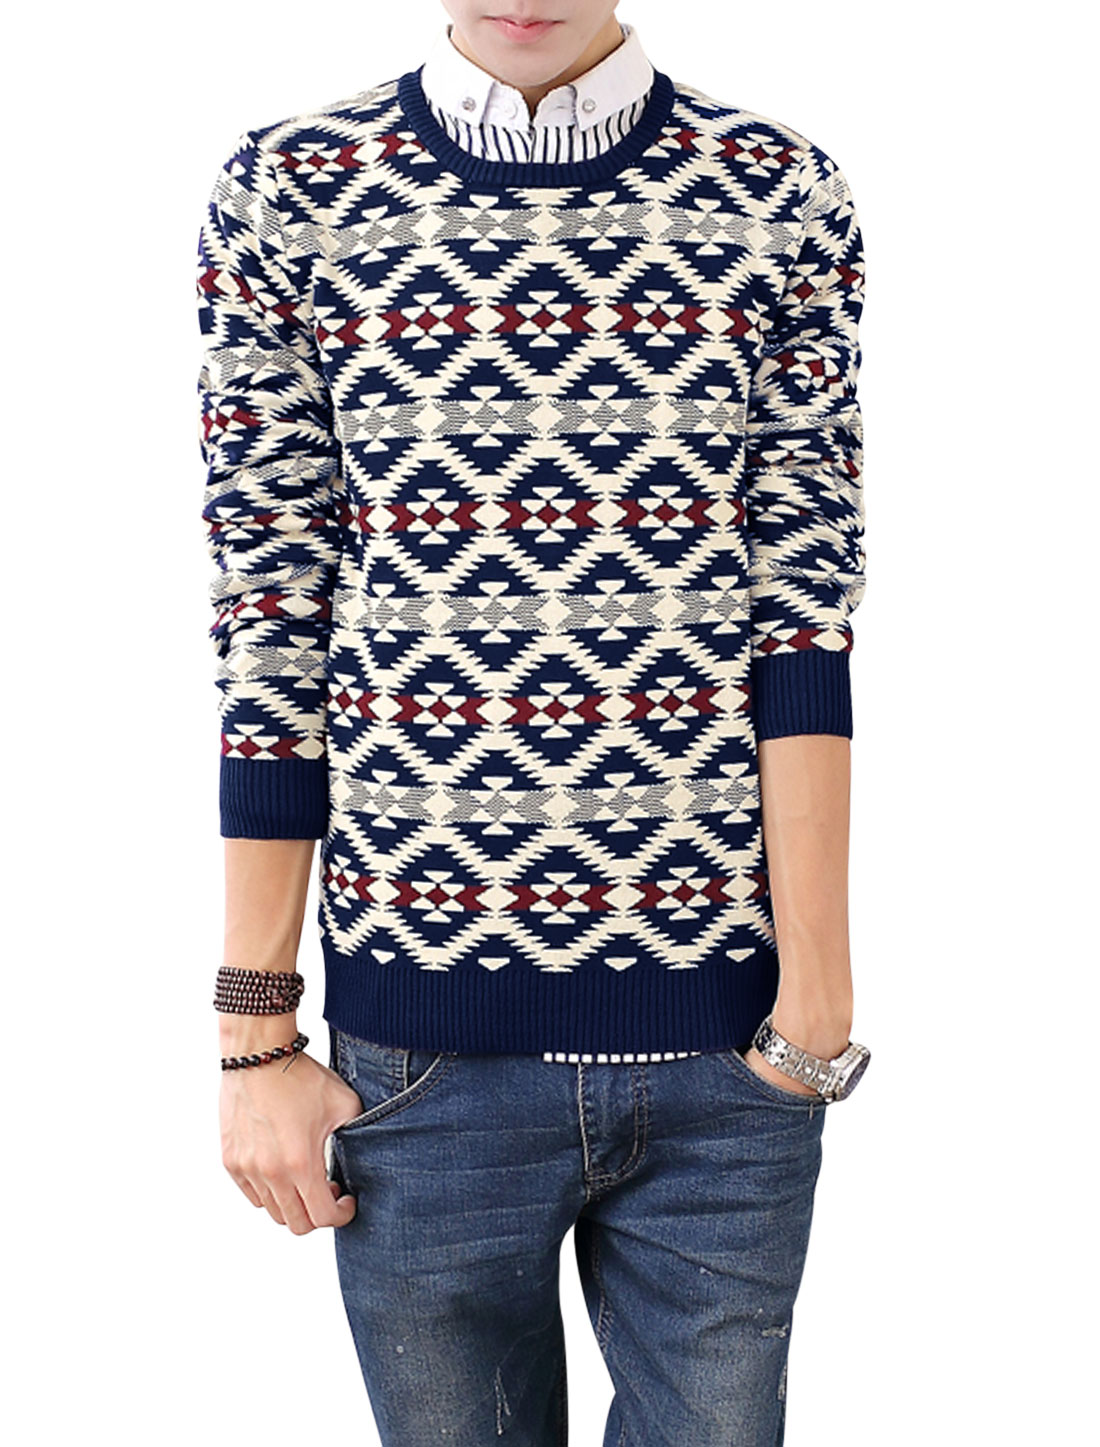 Men Round Neck Geometric Prints Long Sleeves Knitted Top Navy Blue Beige S